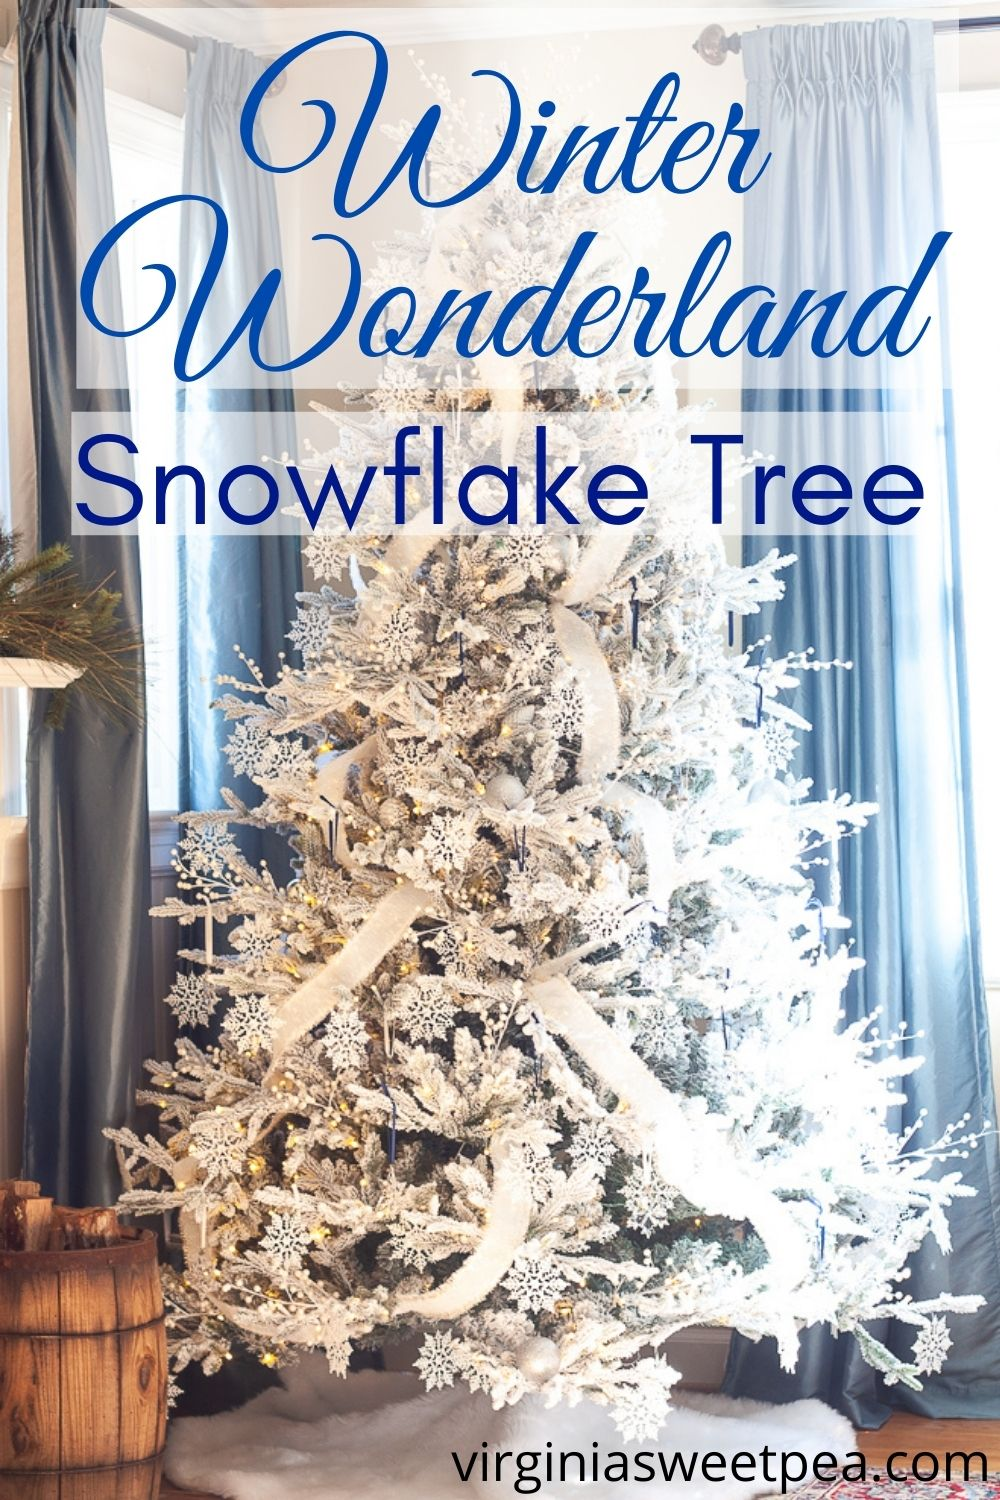 Winter Wonderland Snowflake Tree - Get ideas for decorating a tree with a snowflake theme.  This flocked tree is decorated with dozens of white snowflakes and 26 Swarovski crystal snowflake ornaments.  Get 25+ more Christmas tree decorating ideas from a talented group of home decor bloggers who also are sharing their Christmas trees. via @spaula